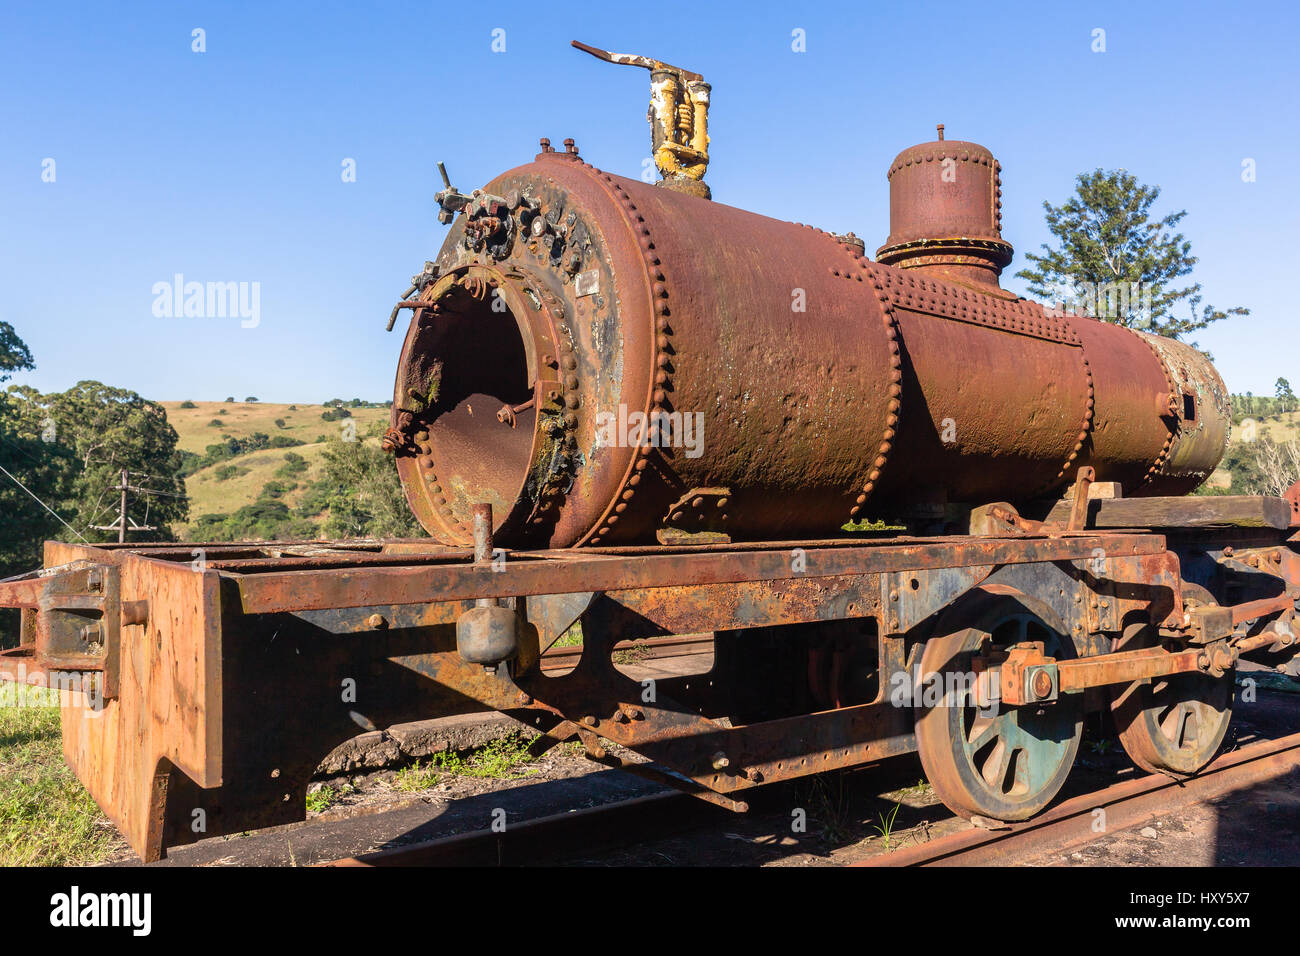 Steam Train old steam locomotives boiler stamped 1951 decaying station graveyard. Stock Photo